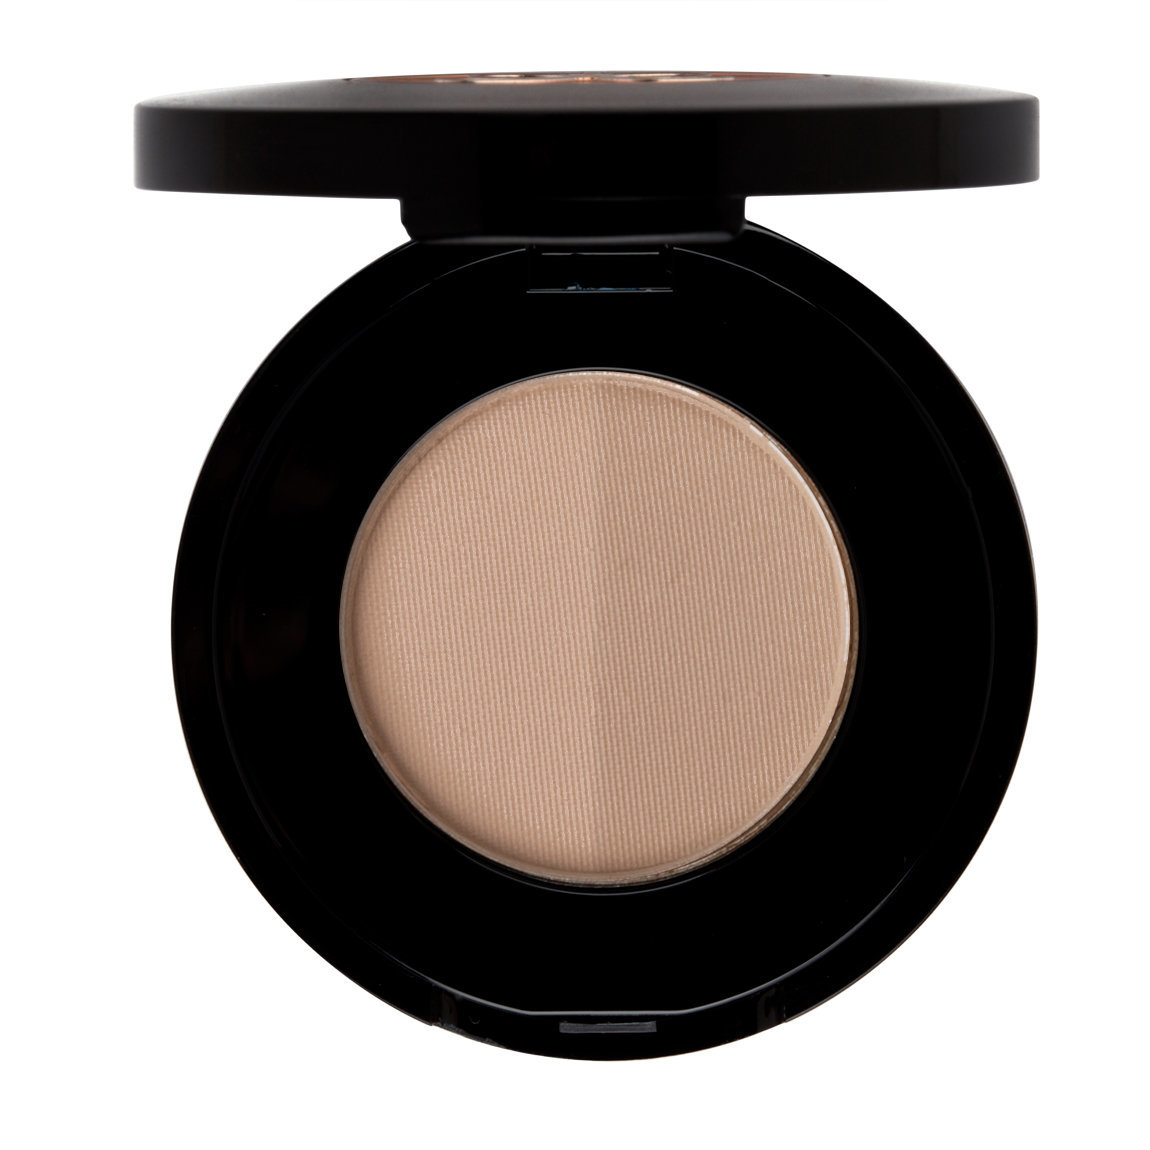 Anastasia Beverly Hills Brow Powder Duo Blonde Beautylish